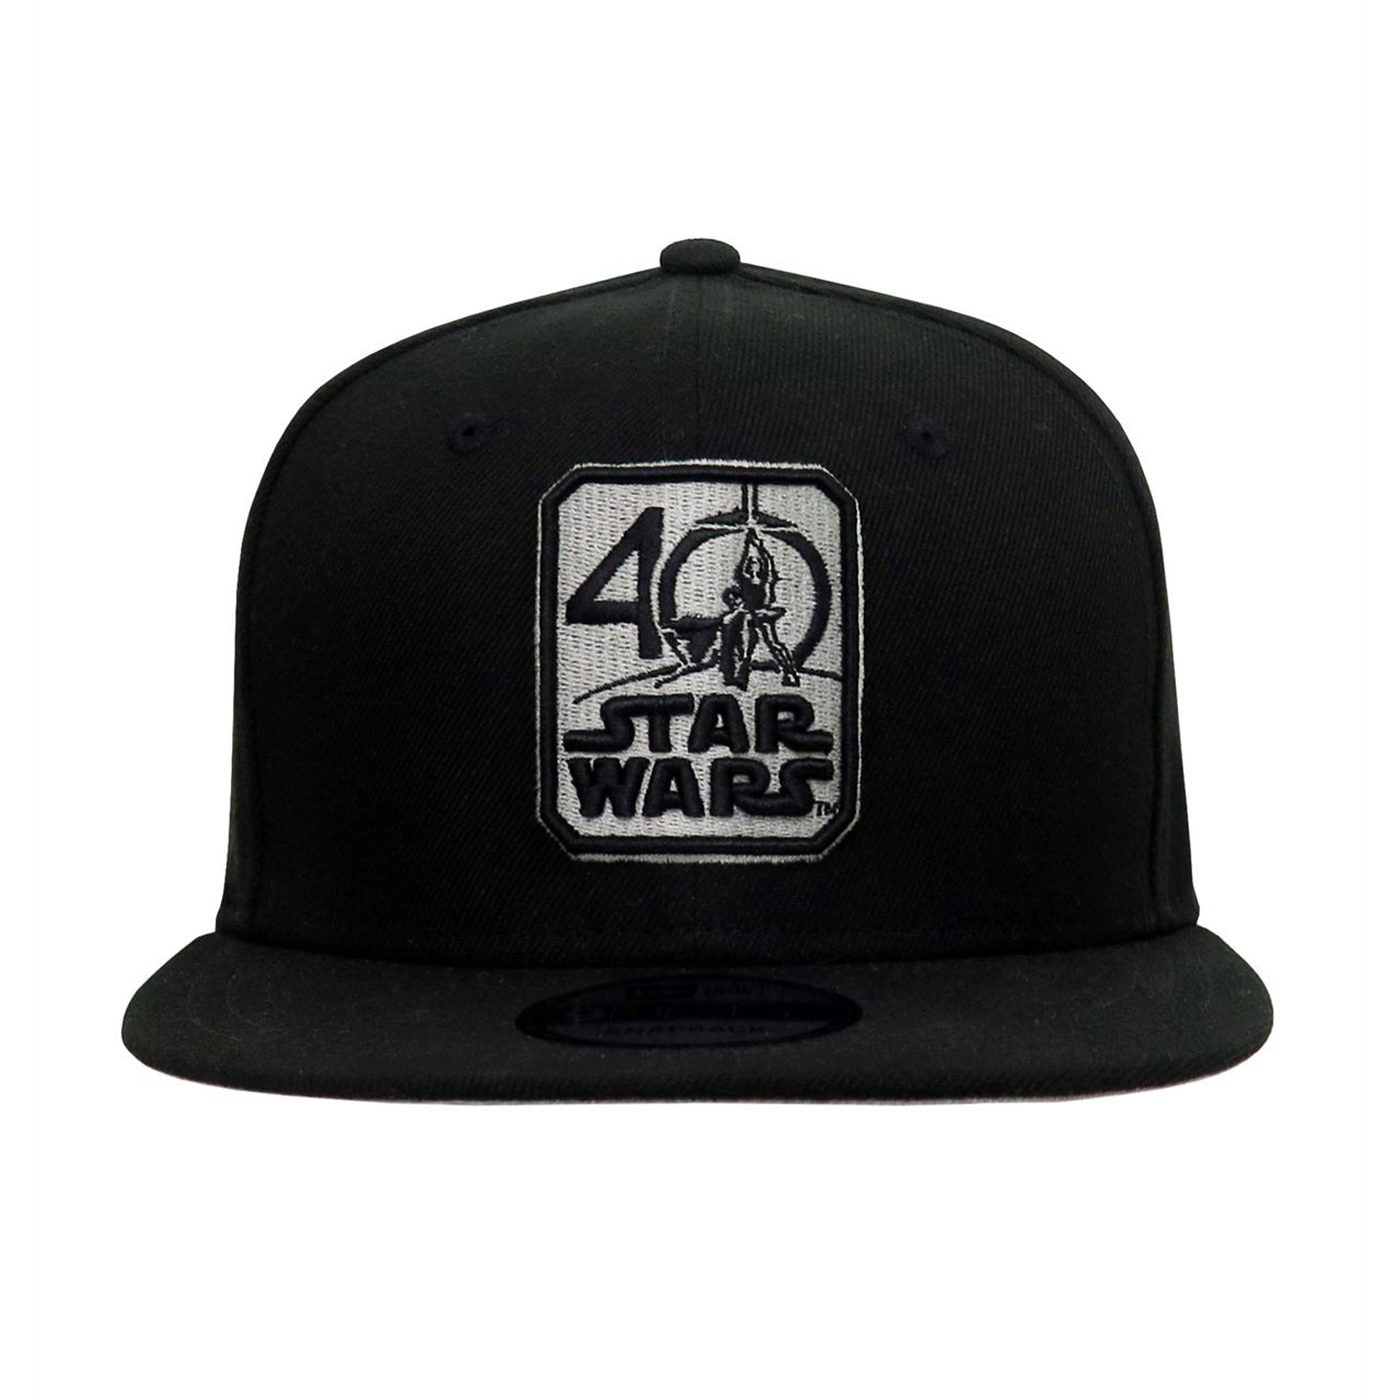 Star Wars 40th Anniversary Logo 9Fifty Adjustable Hat